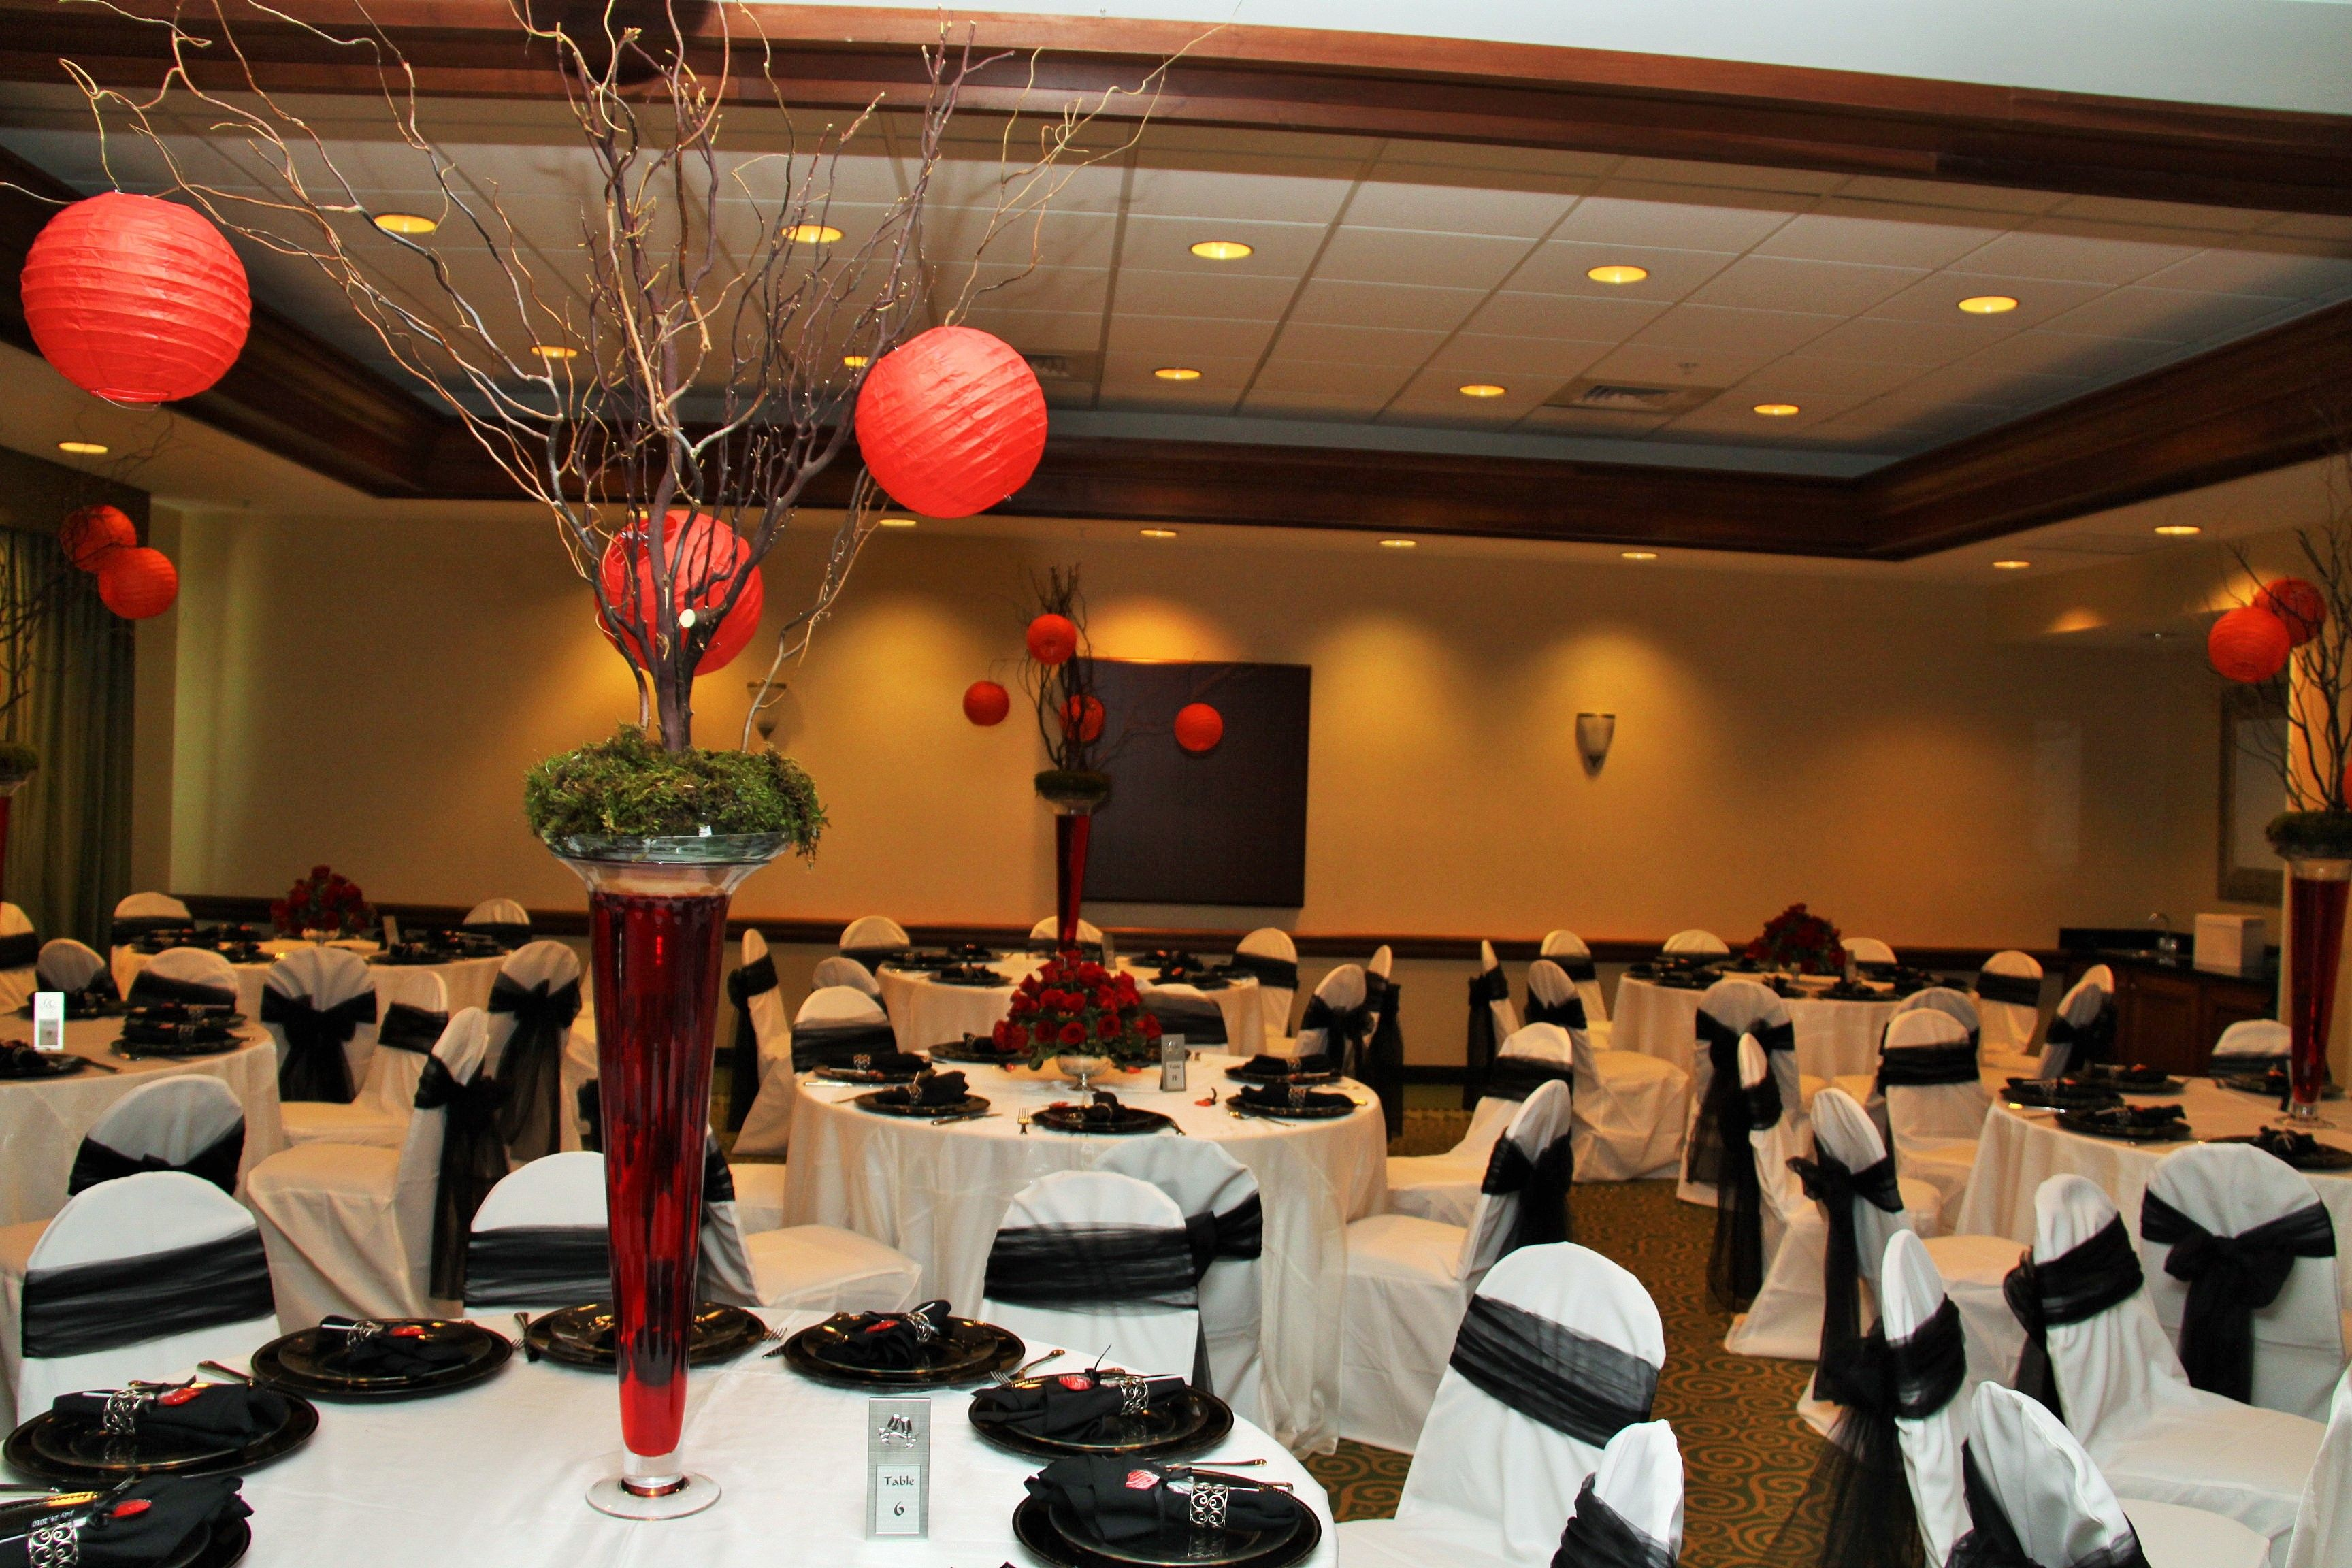 Wedding Decor- White Linen, White Chair Covers with Black Bows and Manzantia Tree Centerpiece with Red Hanging Lanterns